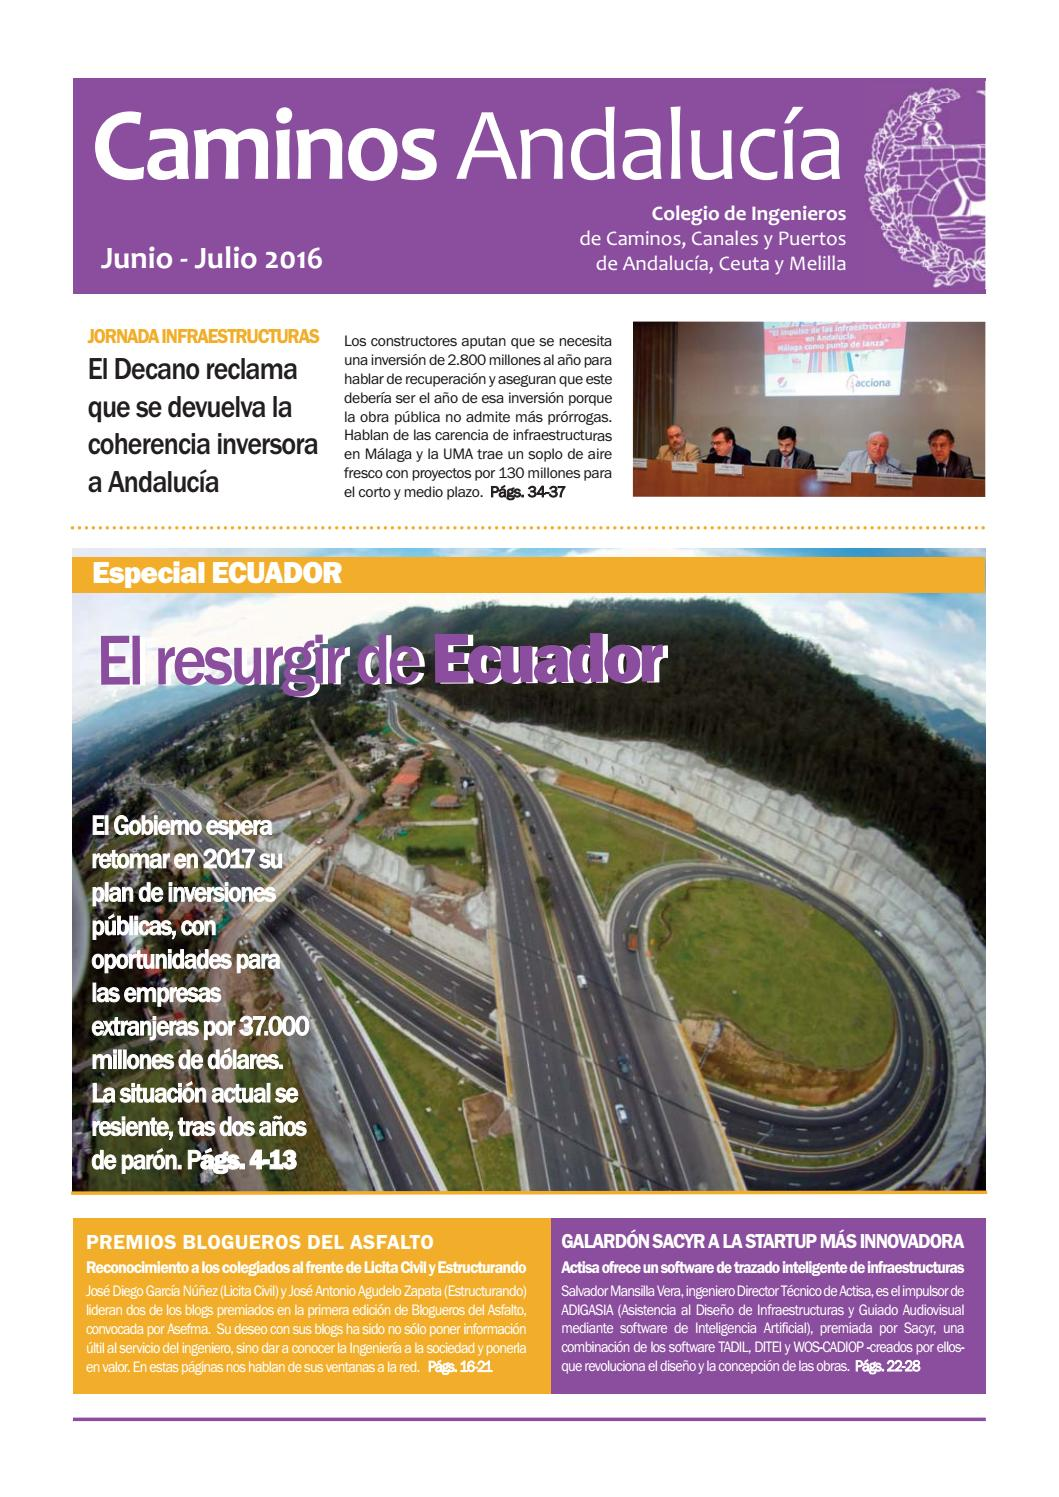 Caminos Andalucía Junio-Julio 2016 by CICCP Andalucia - issuu